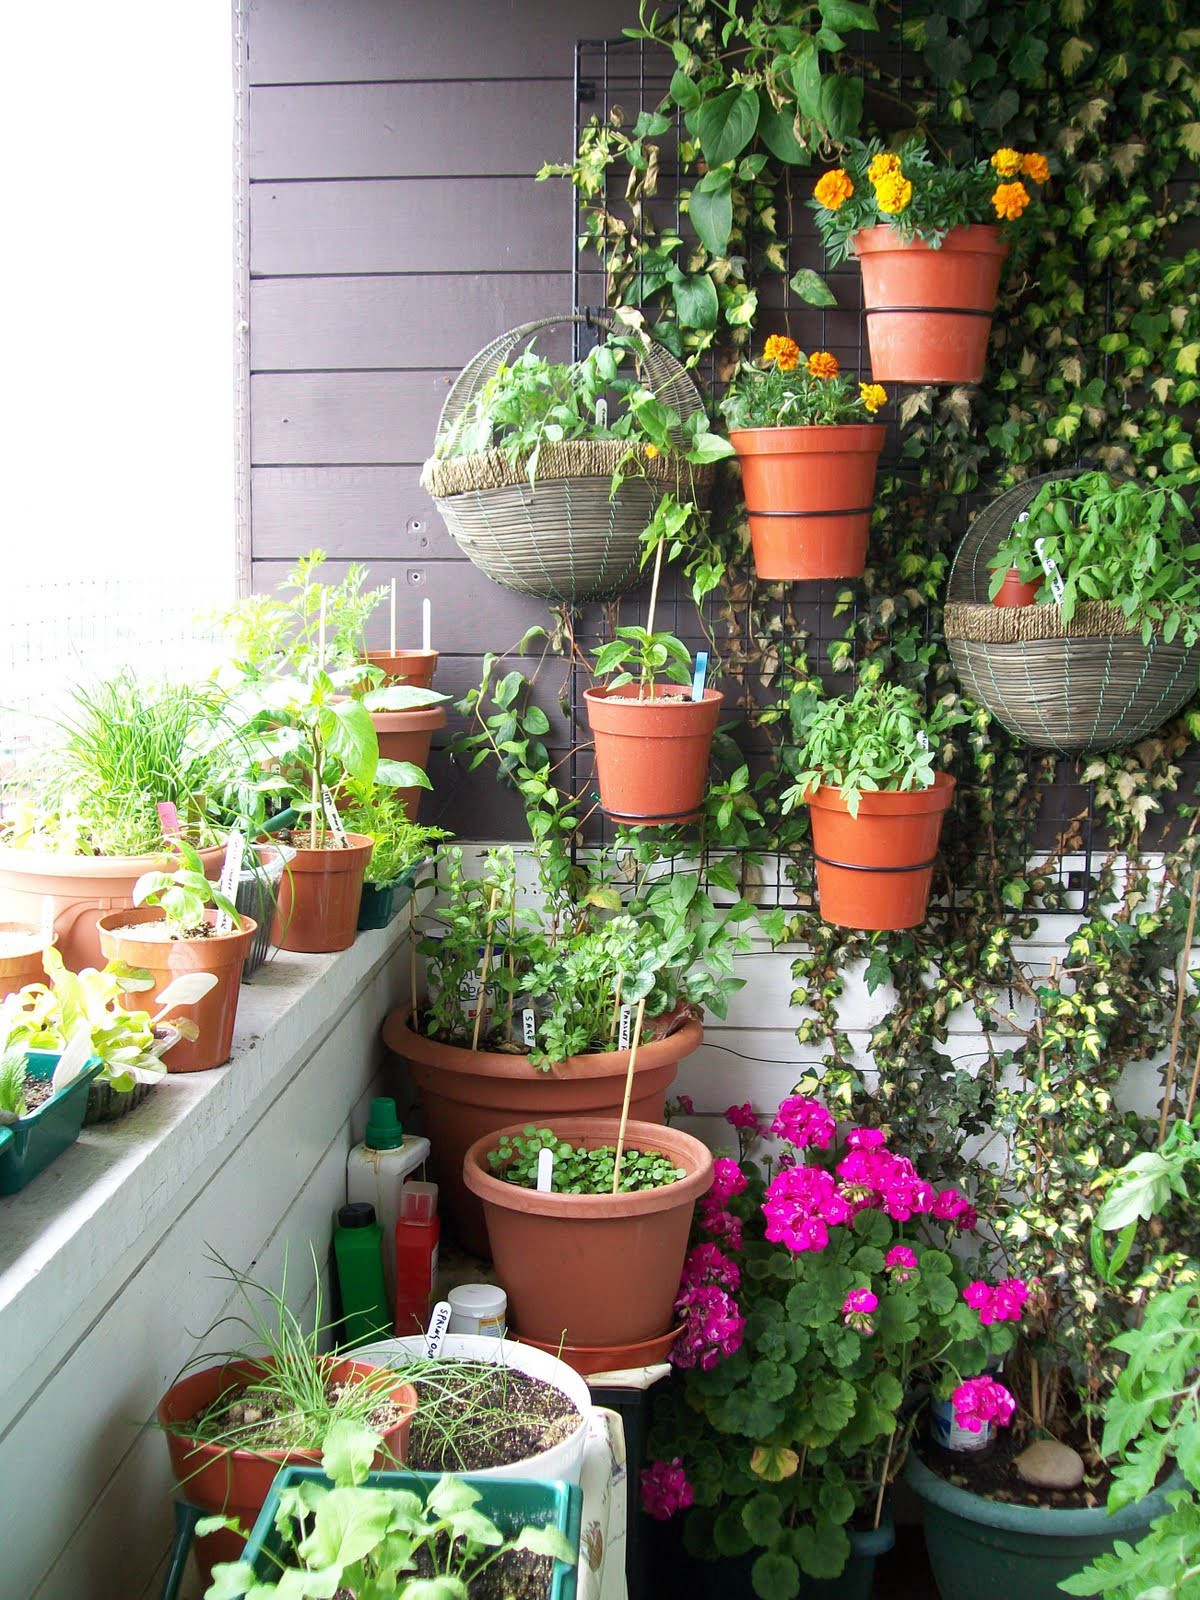 5 Tips To Landscaping Small Balconies Huzzpa Stories